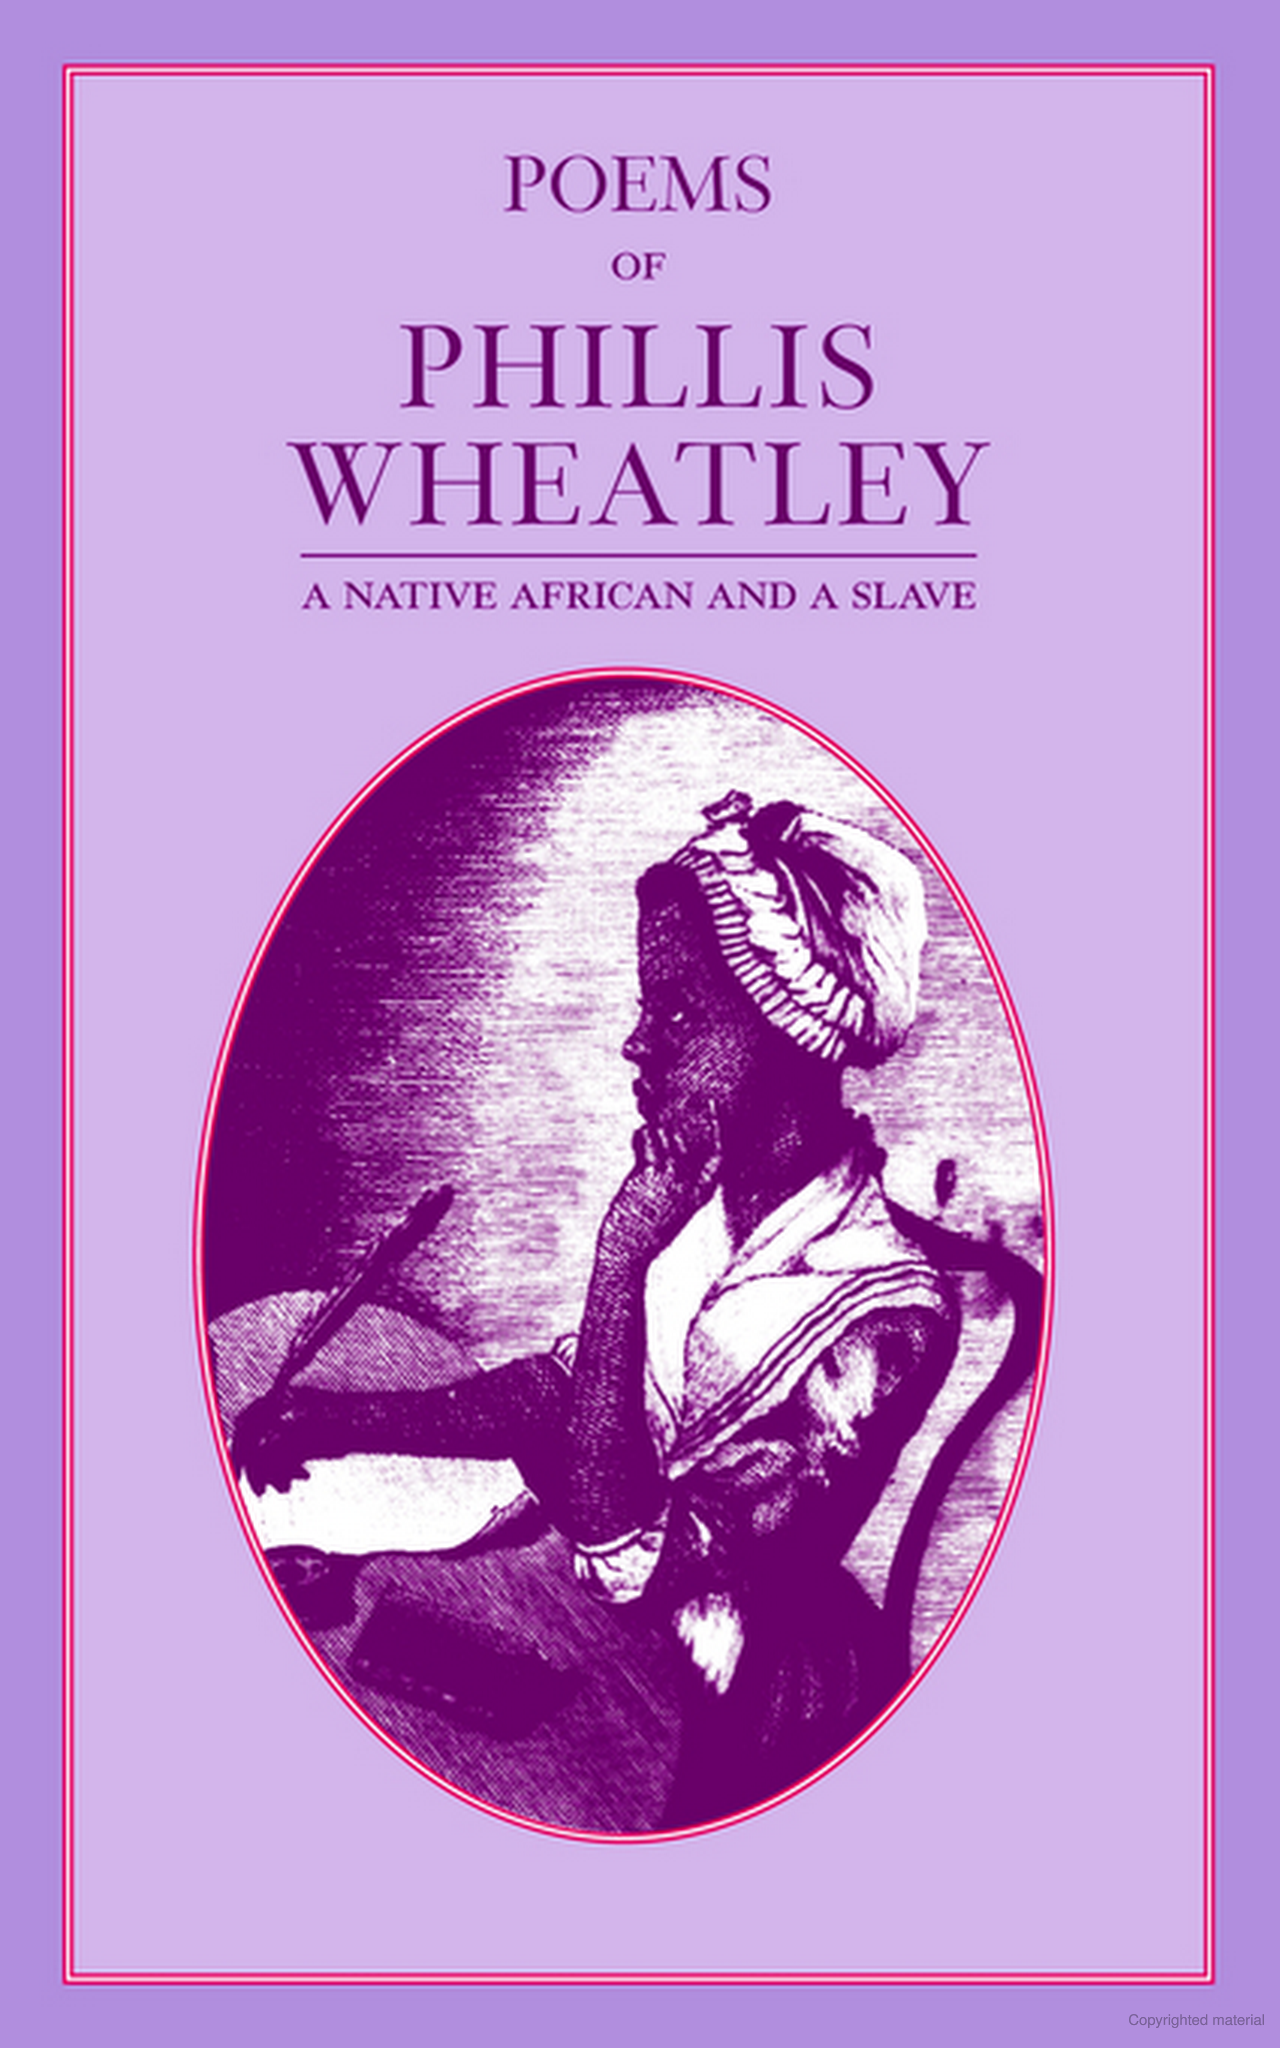 poems of phillis wheatley unfettered minds phillis poems of phillis wheatley